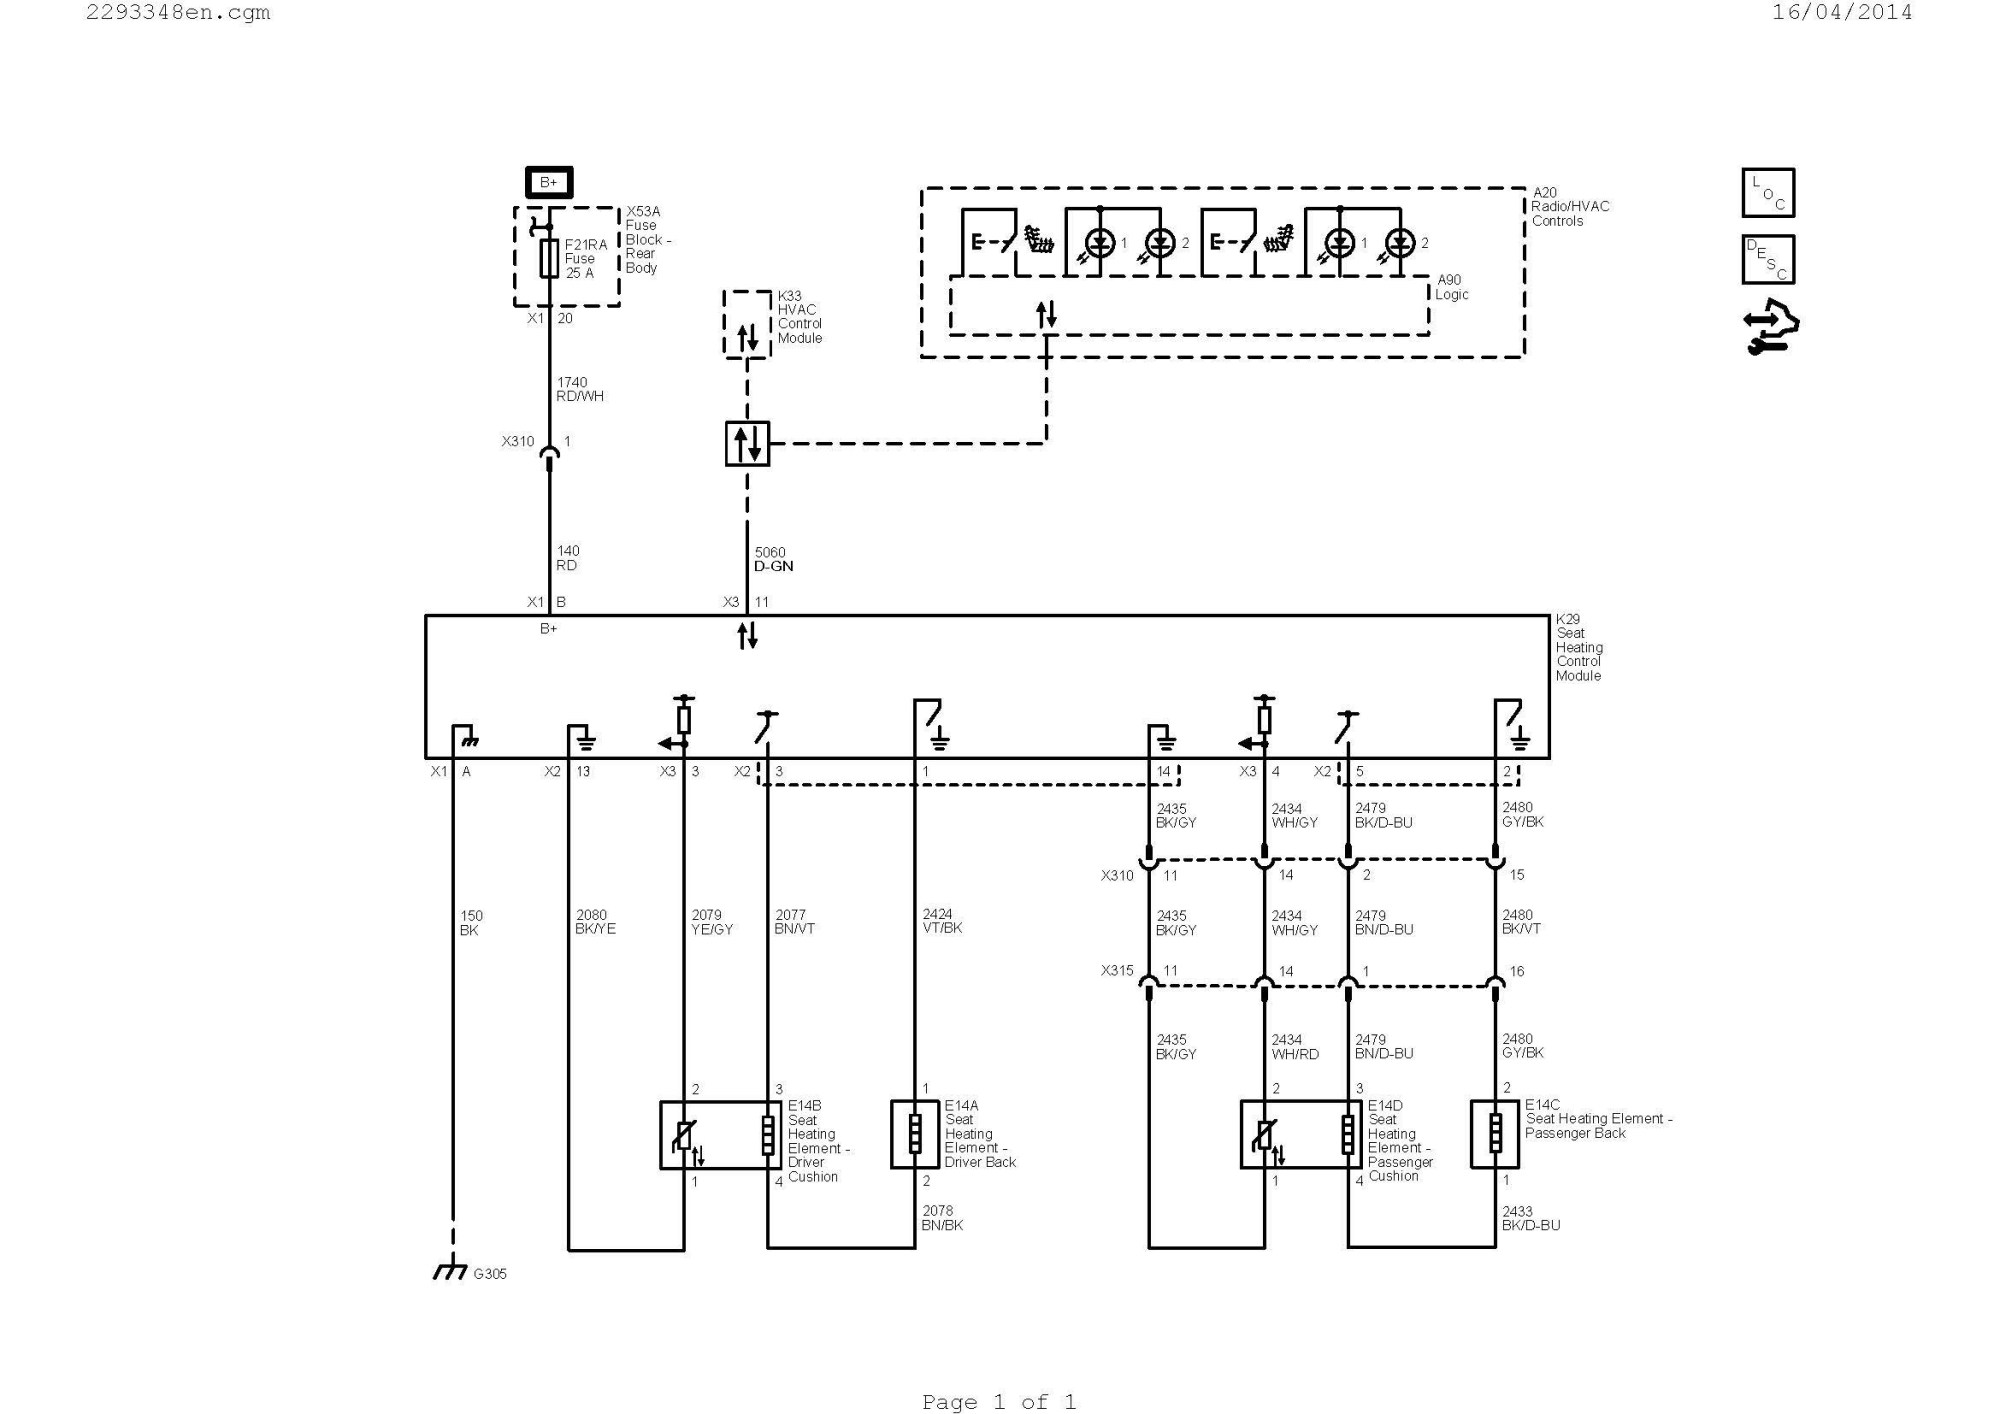 hight resolution of central boiler thermostat wiring diagram download wiring diagrams for central heating refrence hvac diagram best